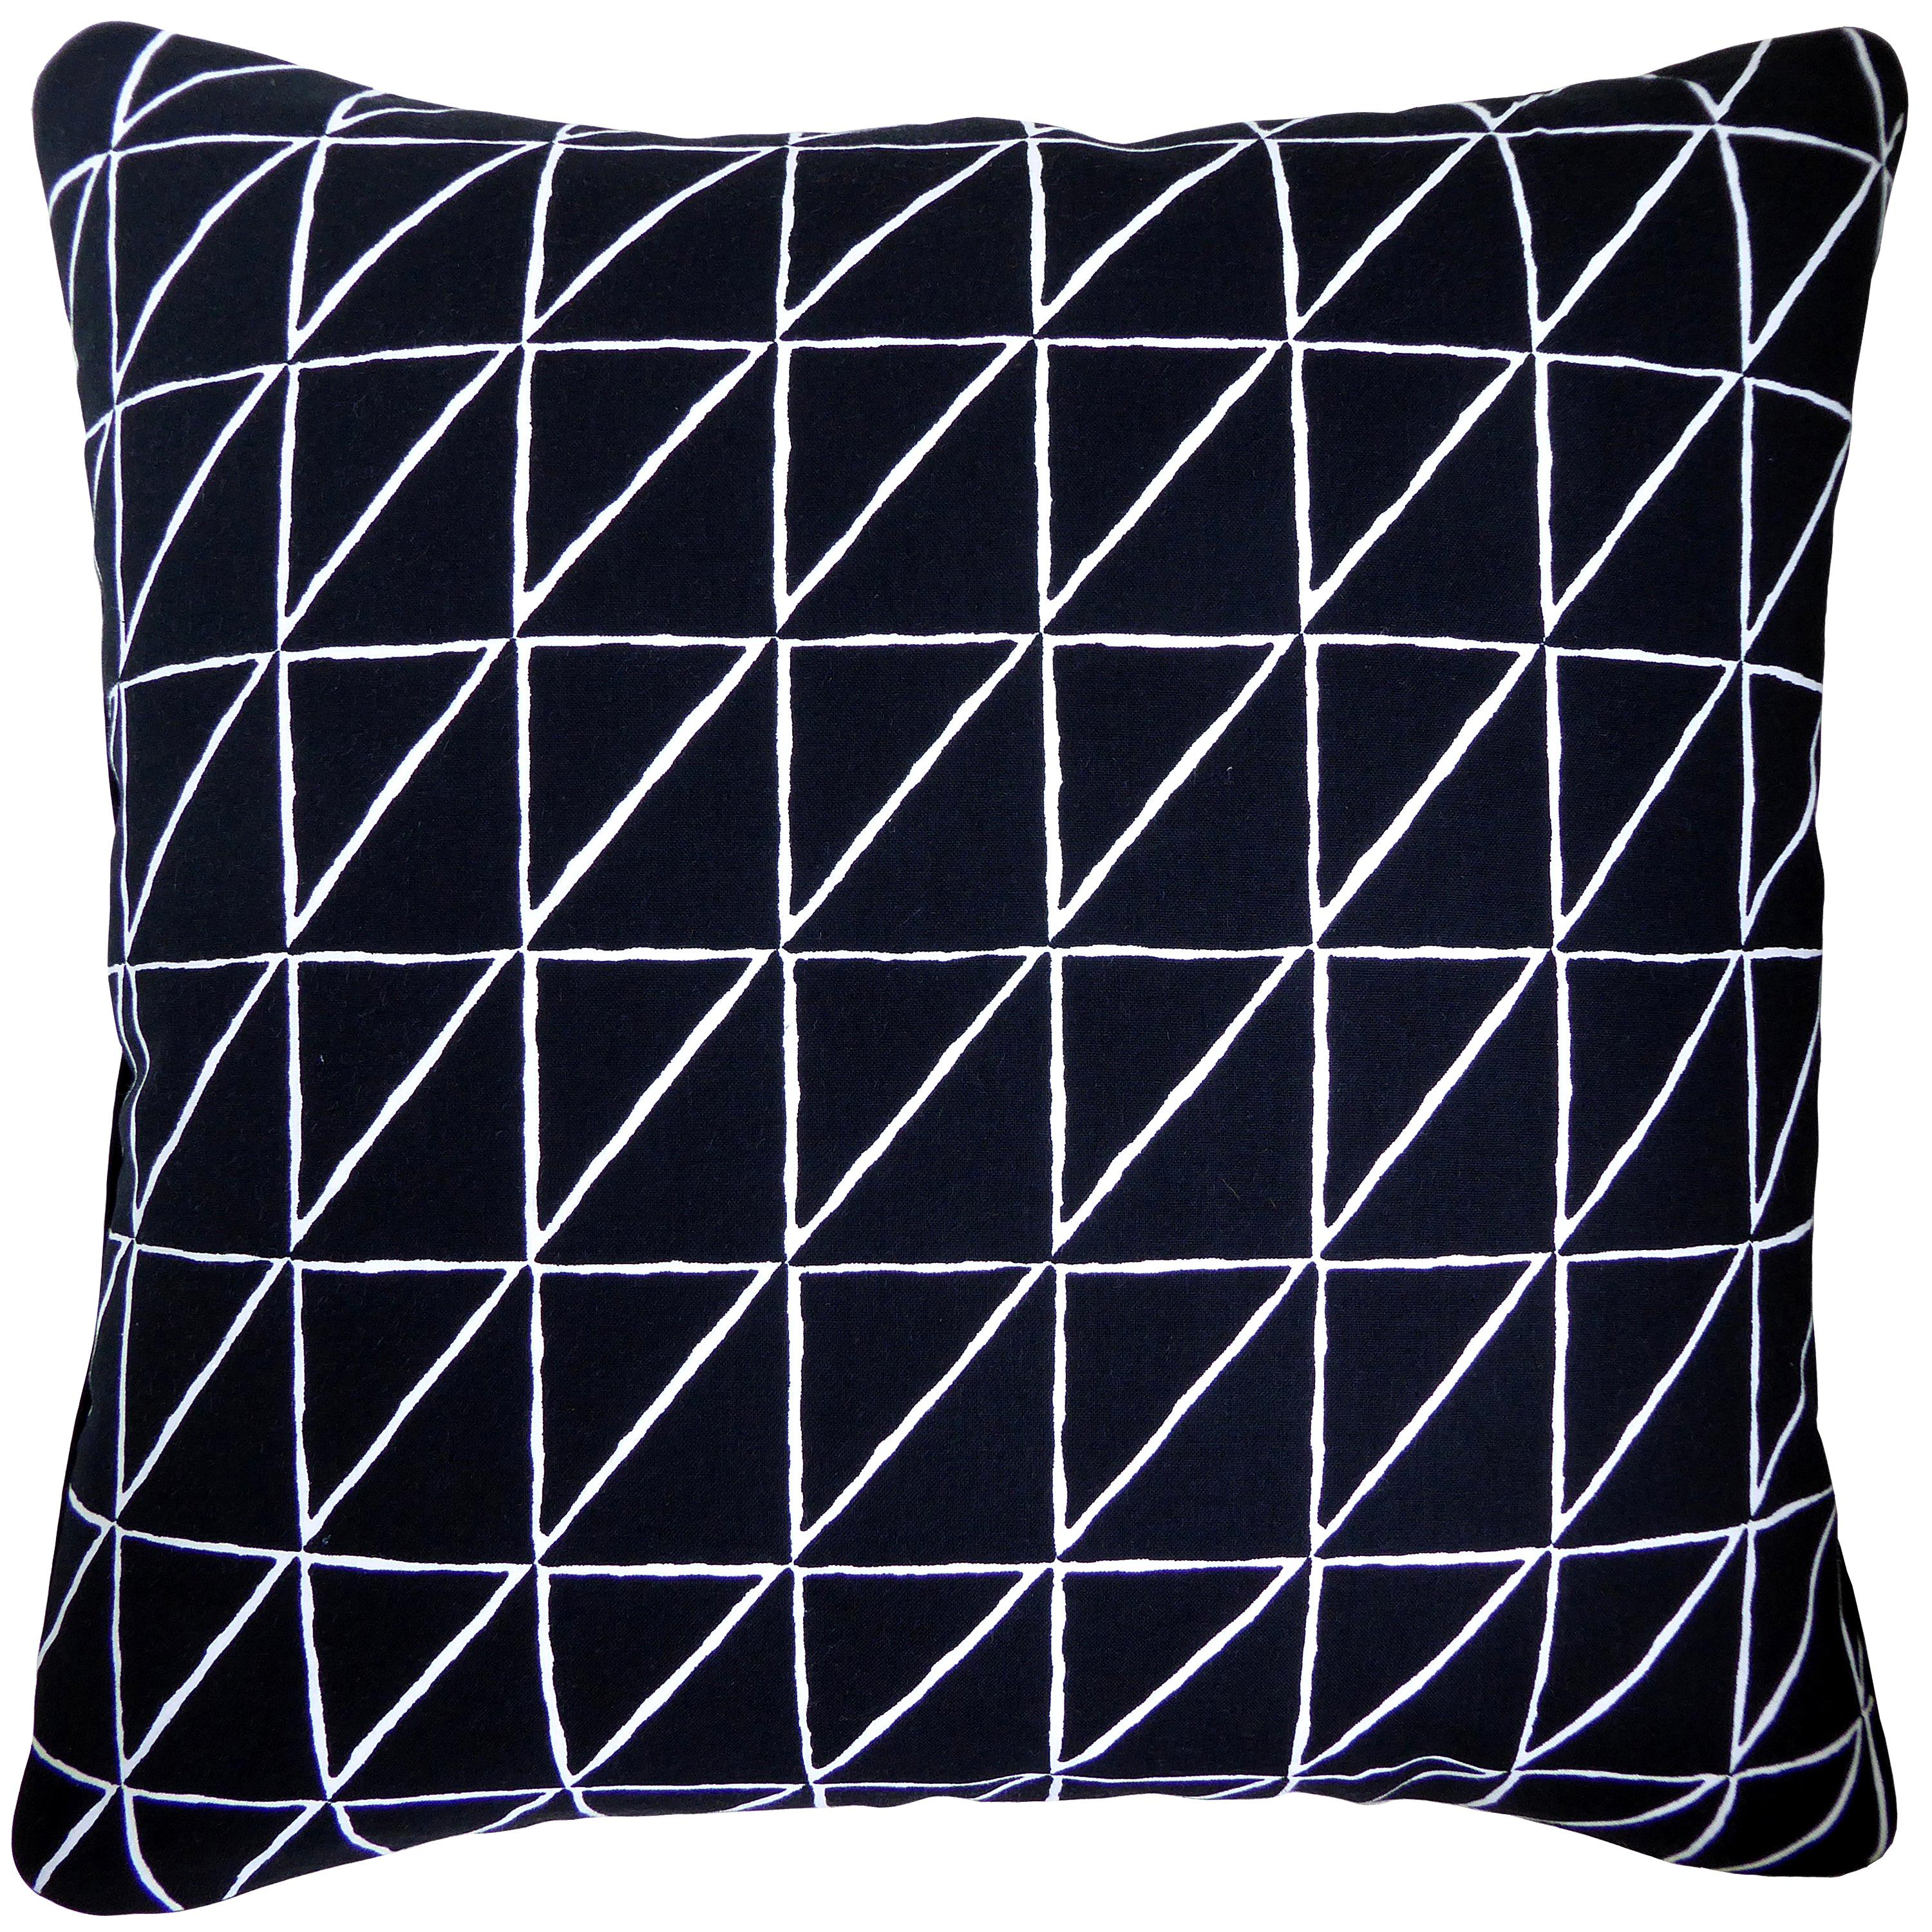 'Vintage Cushions' Luxury Bespoke-Made Pillow 'Carrara' Made in London